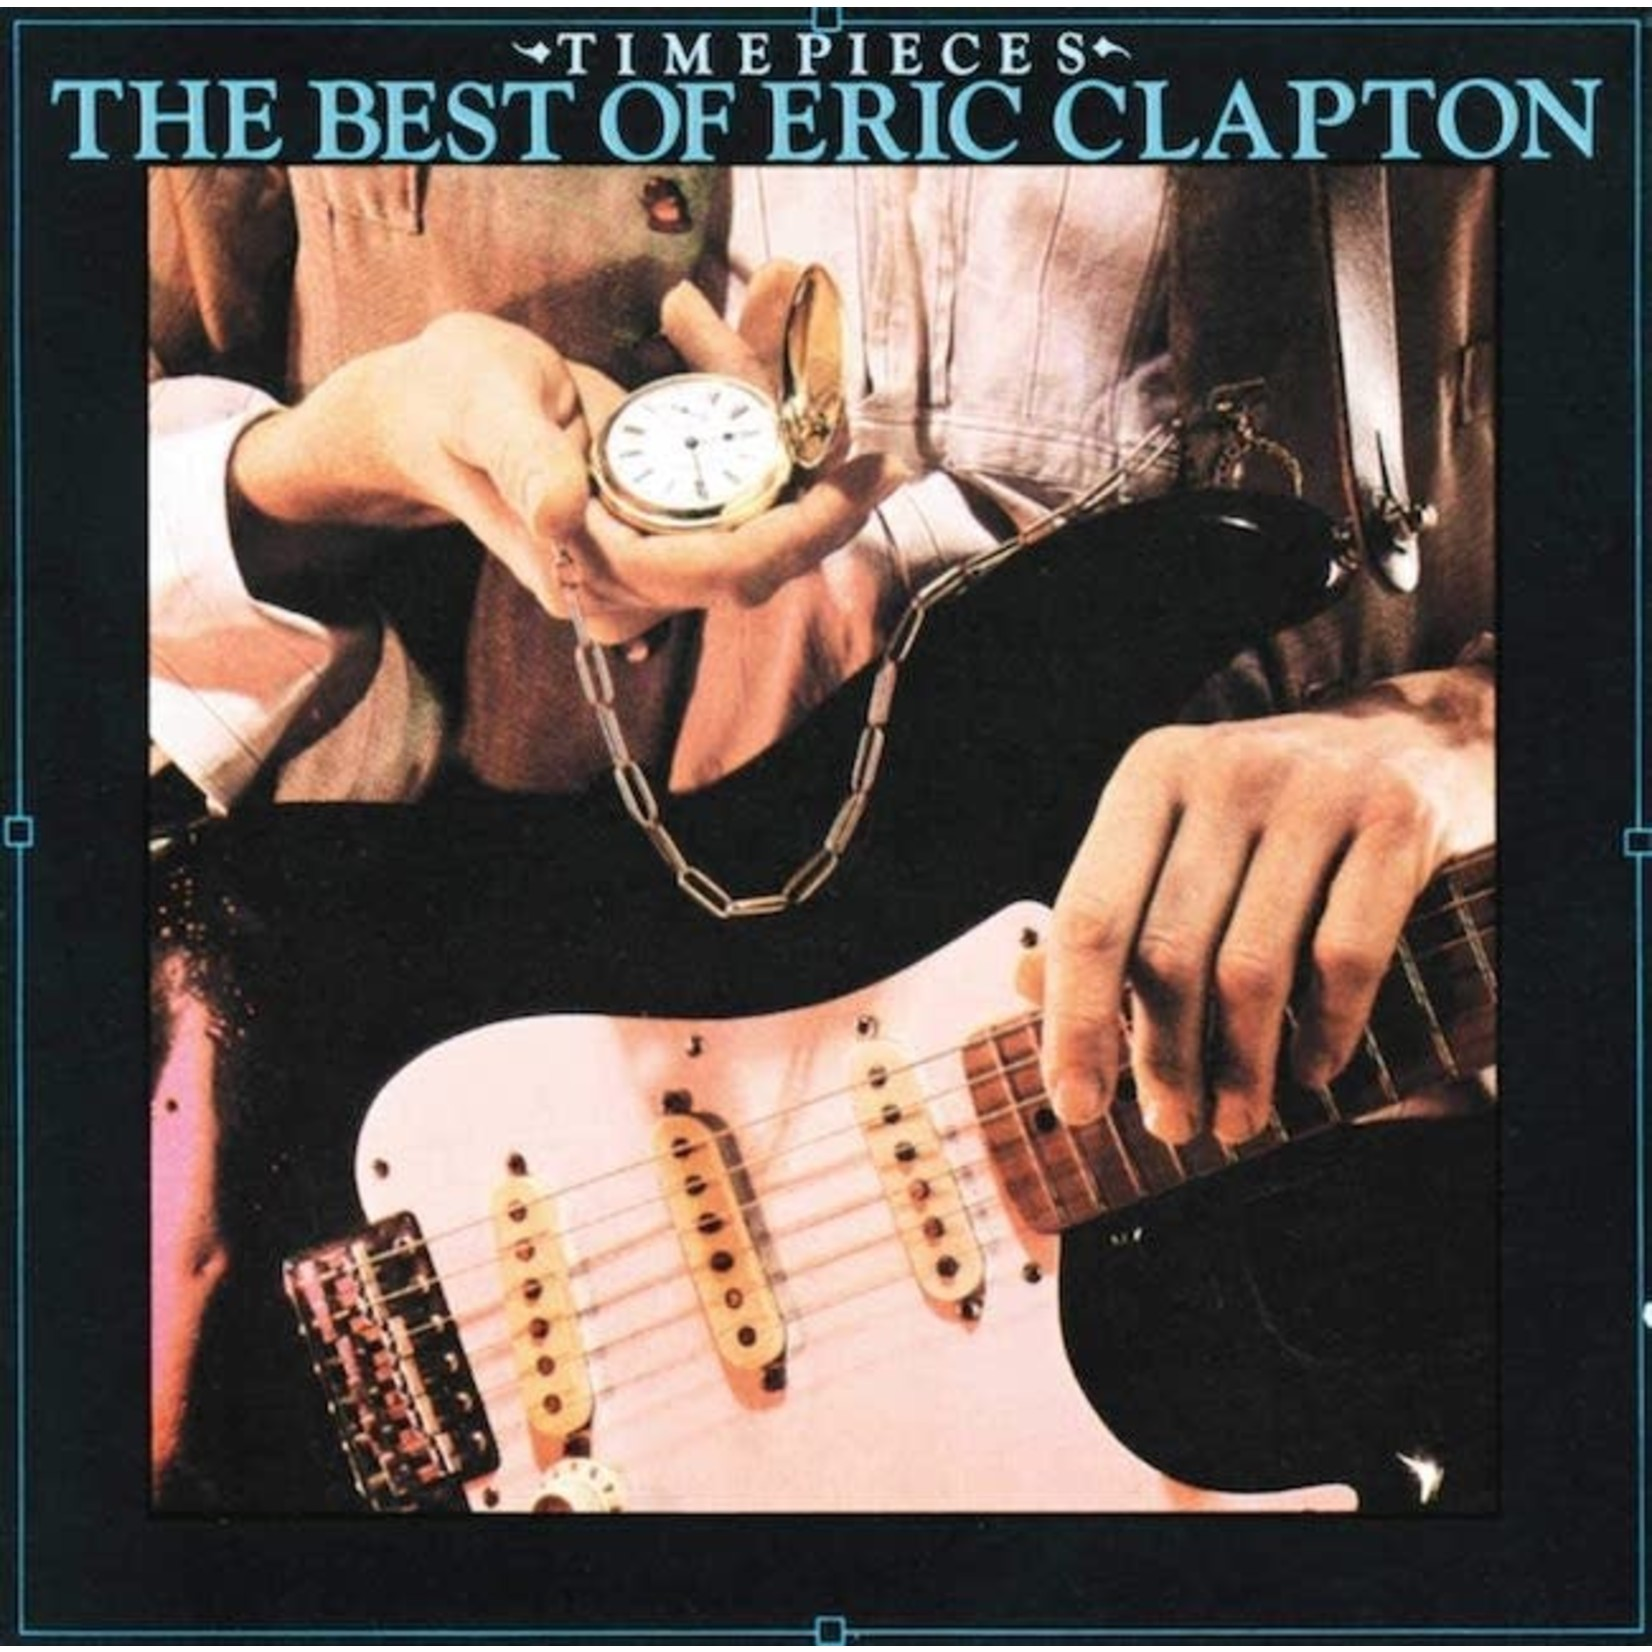 [Vintage] Clapton, Eric: Timepieces, the Best of...